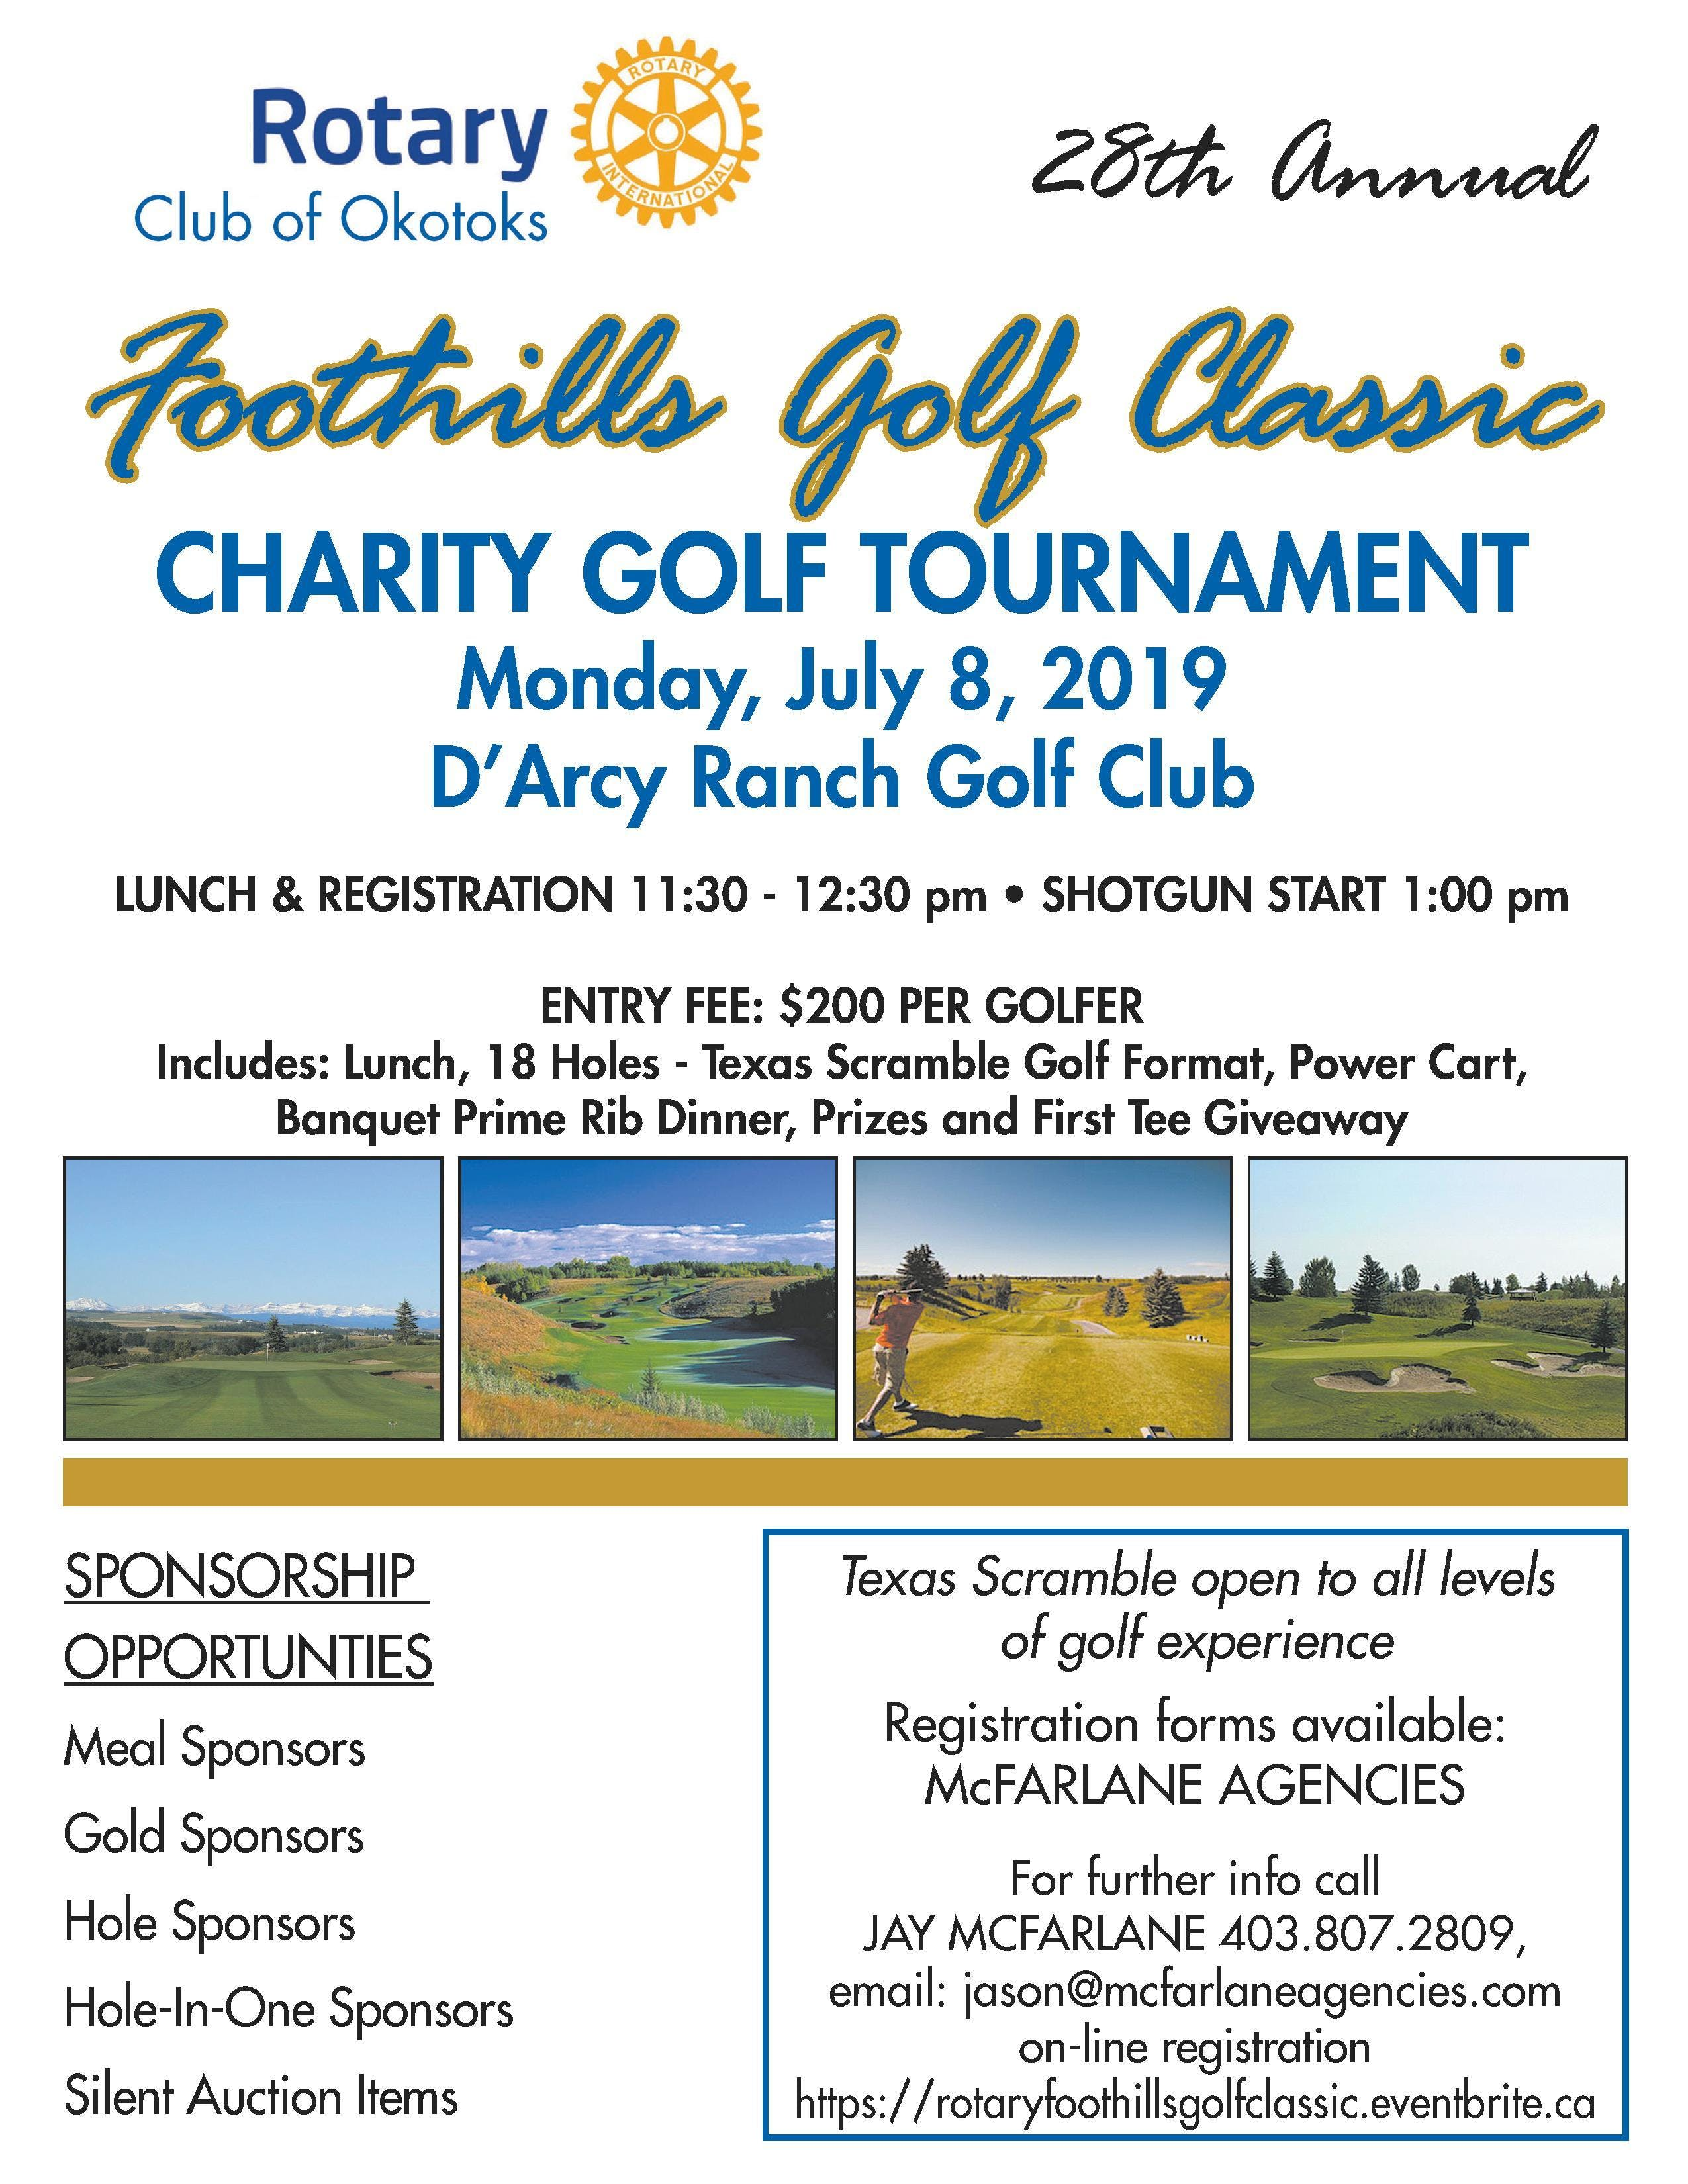 28th Annual Rotary Foothills Golf Classic | YoCaddie